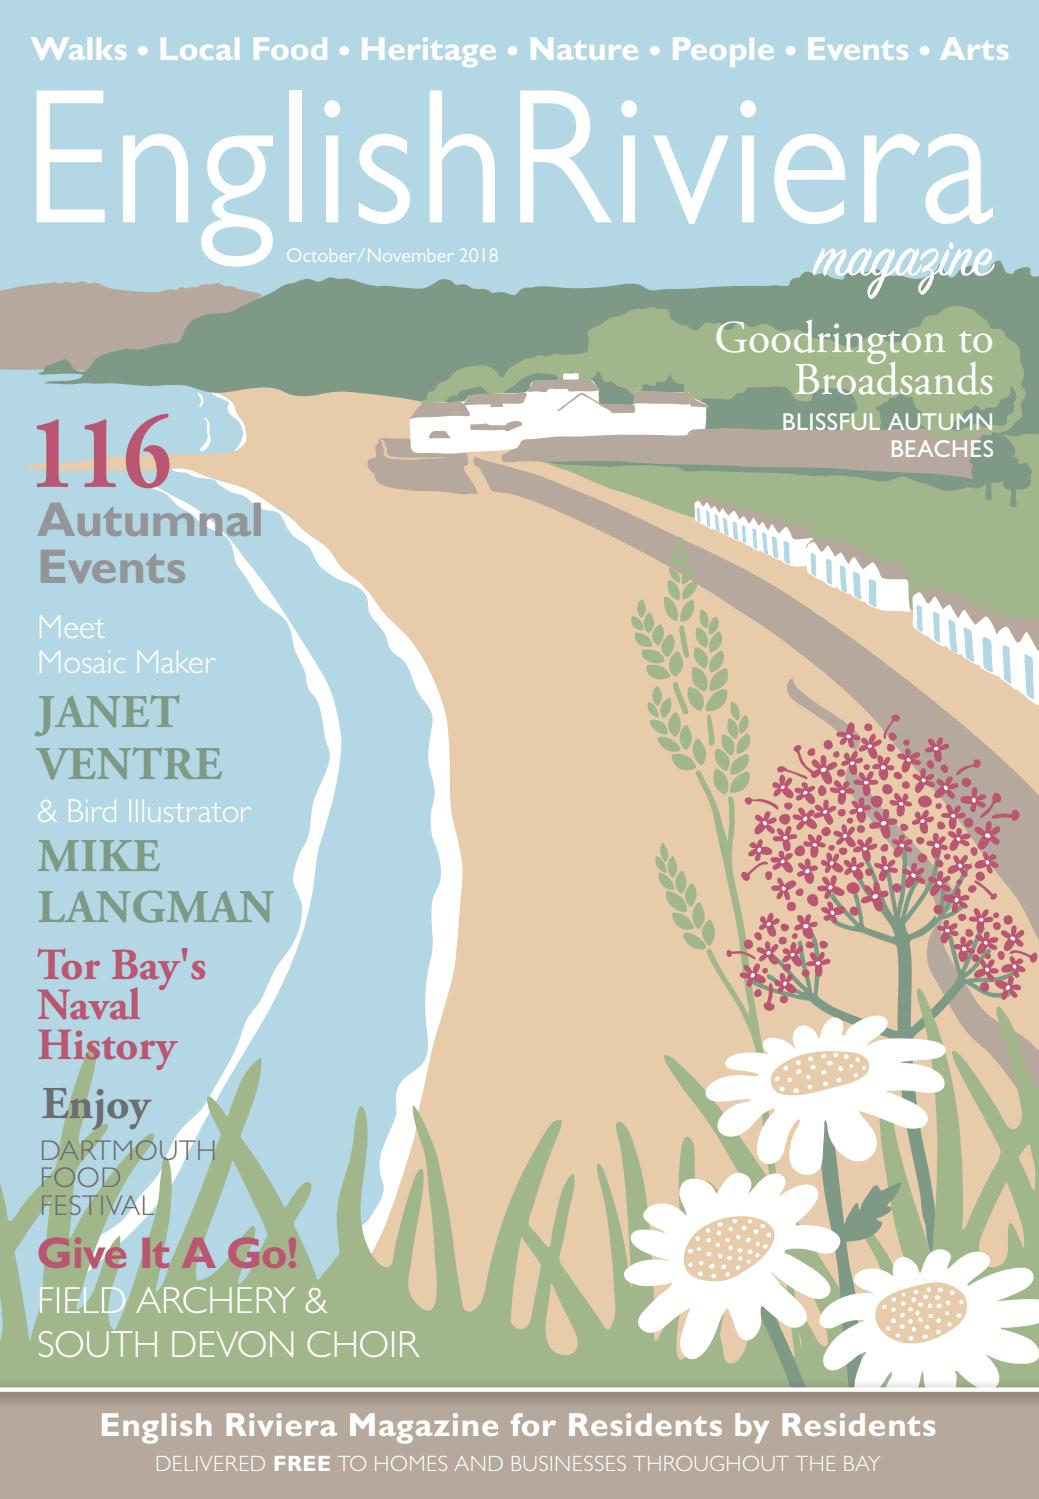 English Riviera Magazine October 2018 Online Edition by English